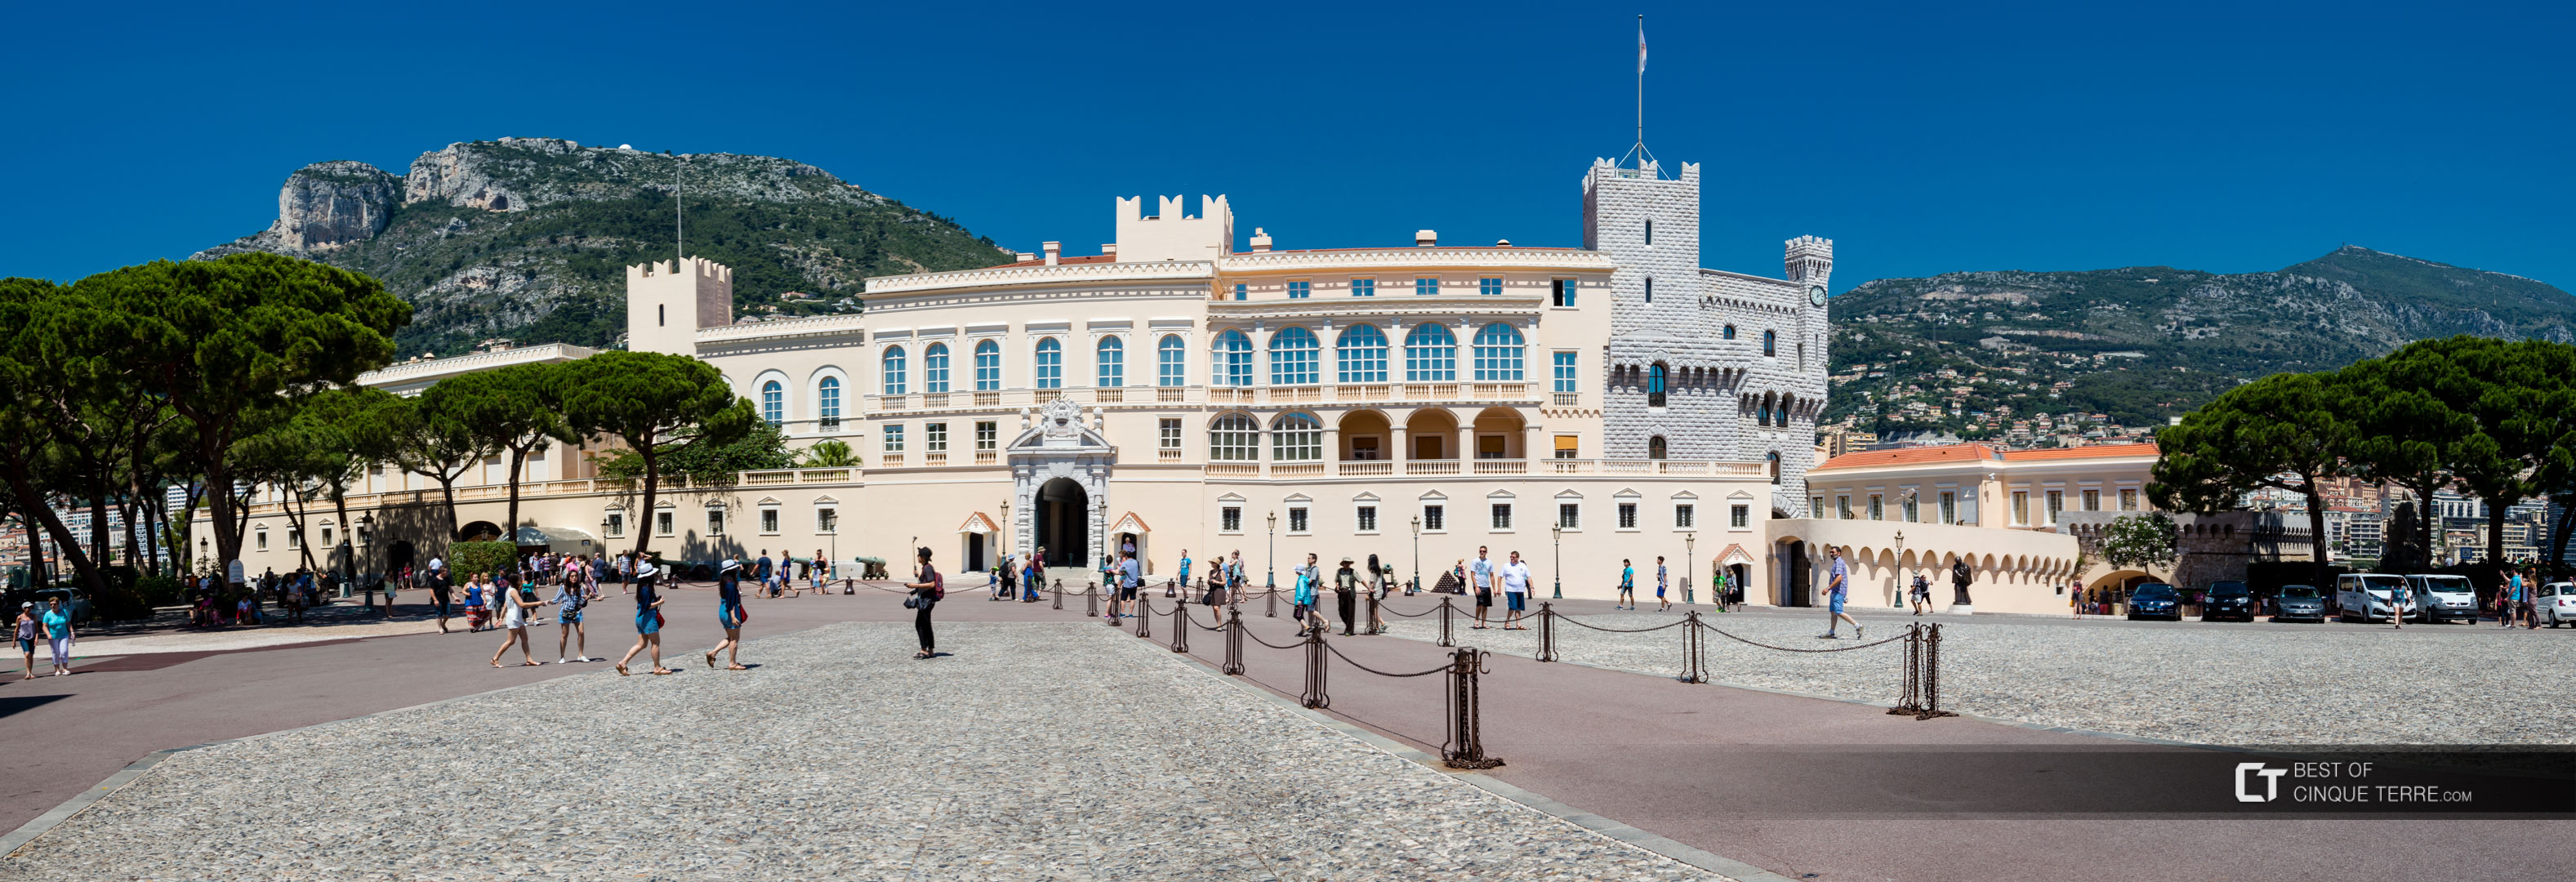 Monaco and monte carlo palace of the princes of monaco and the square publicscrutiny